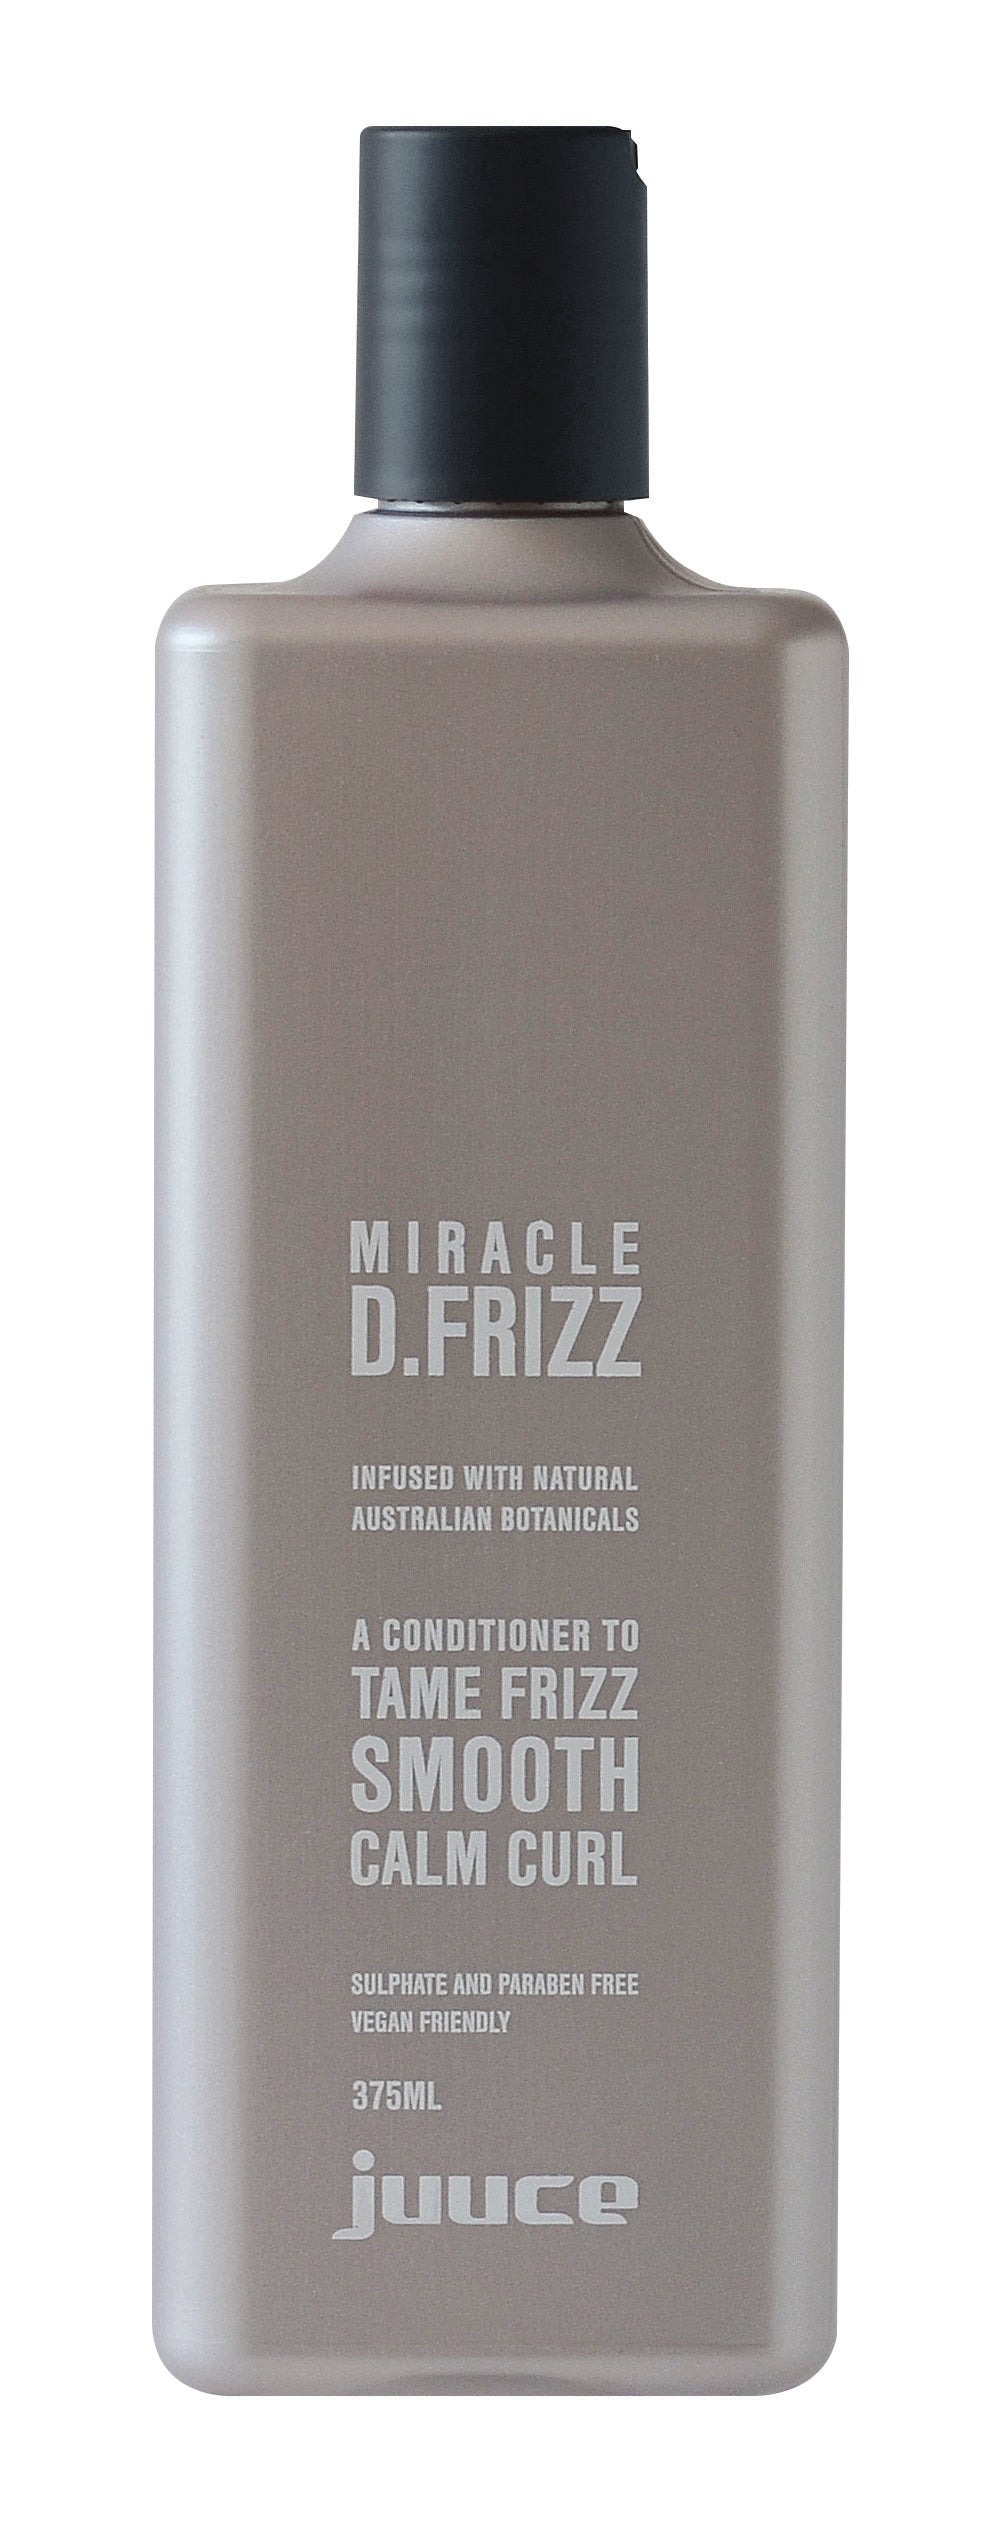 Juuce Miracle D Frizz Conditioner 375ml